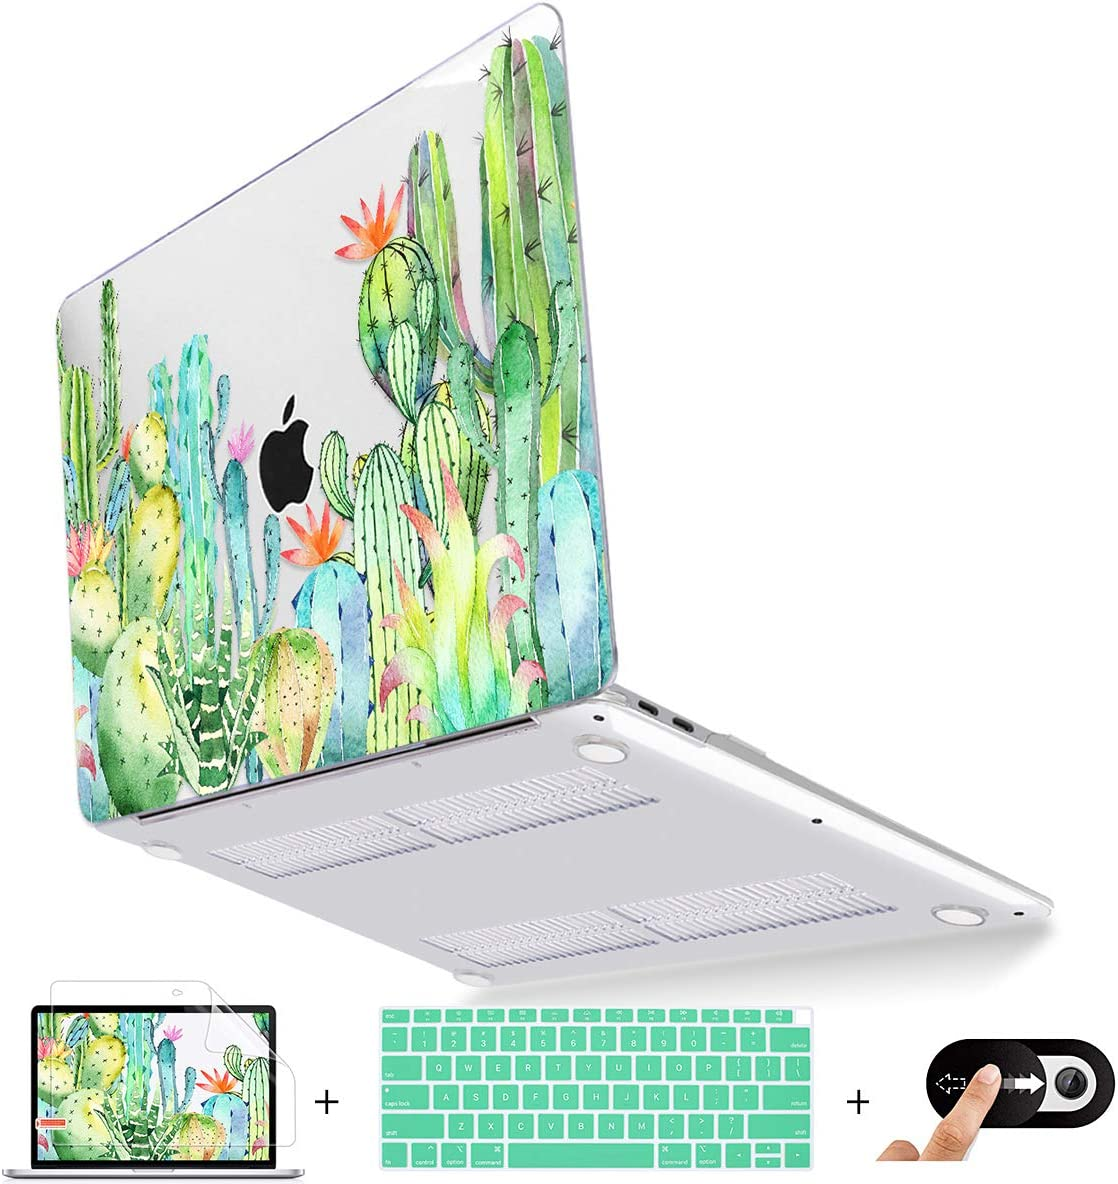 Metron MacBook Air 13 inch Case A2179 A1932 2020 2019 2018 Release, Plastic Hard Shell Case Cover for Apple Mac Air 13 Retina Display with Touch ID, Watercolor Cactus